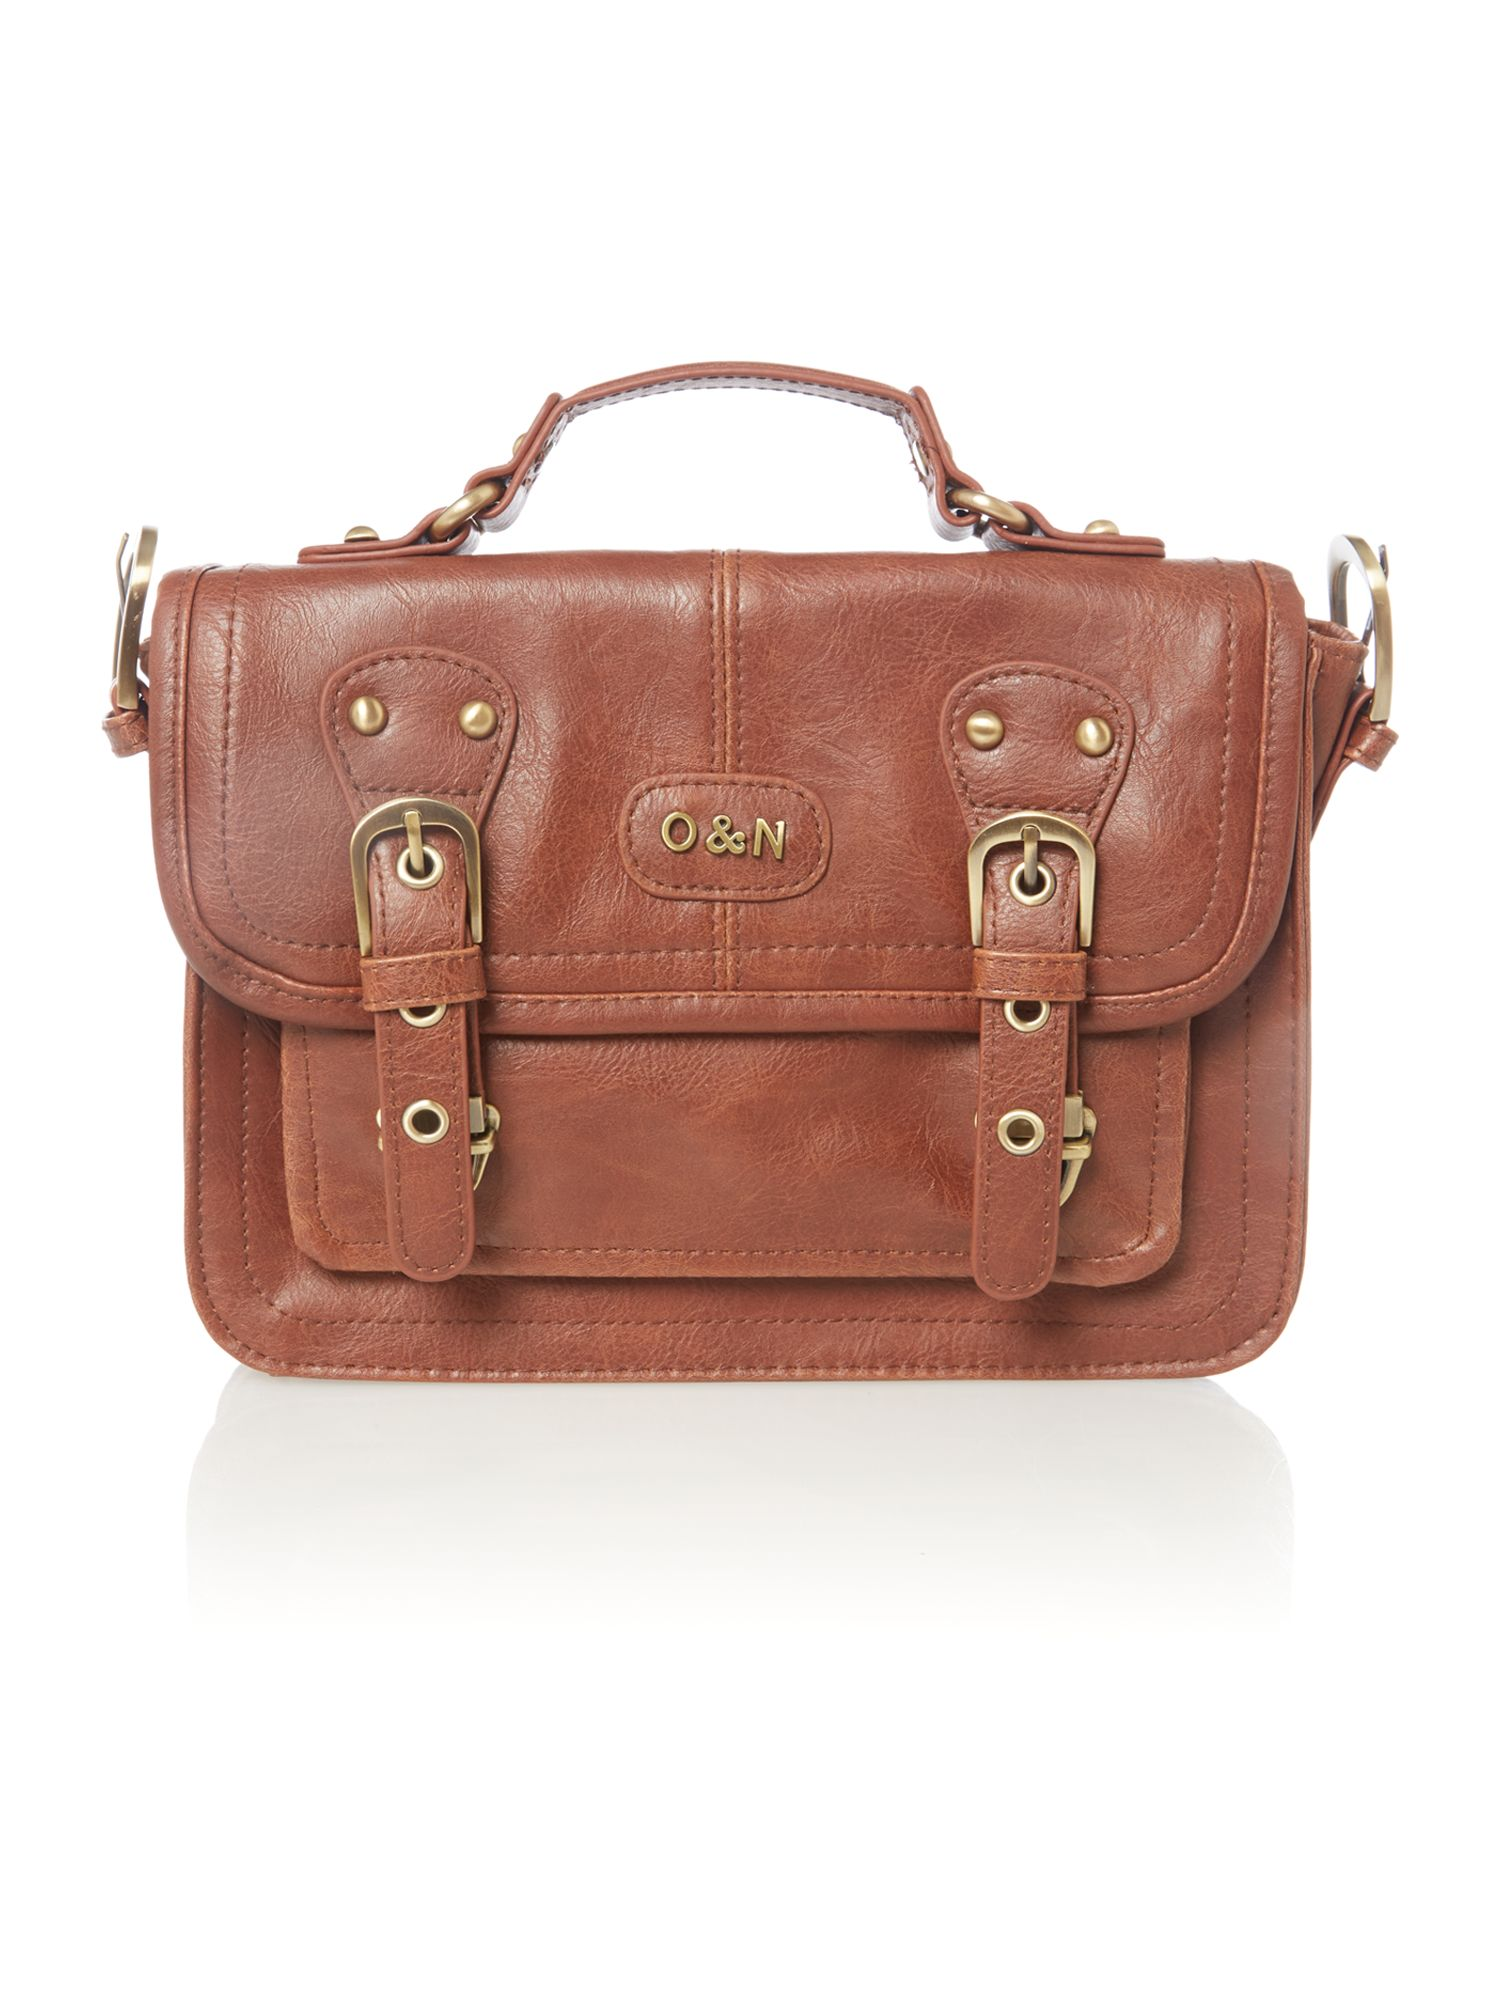 Georgie tan mini satchel bag